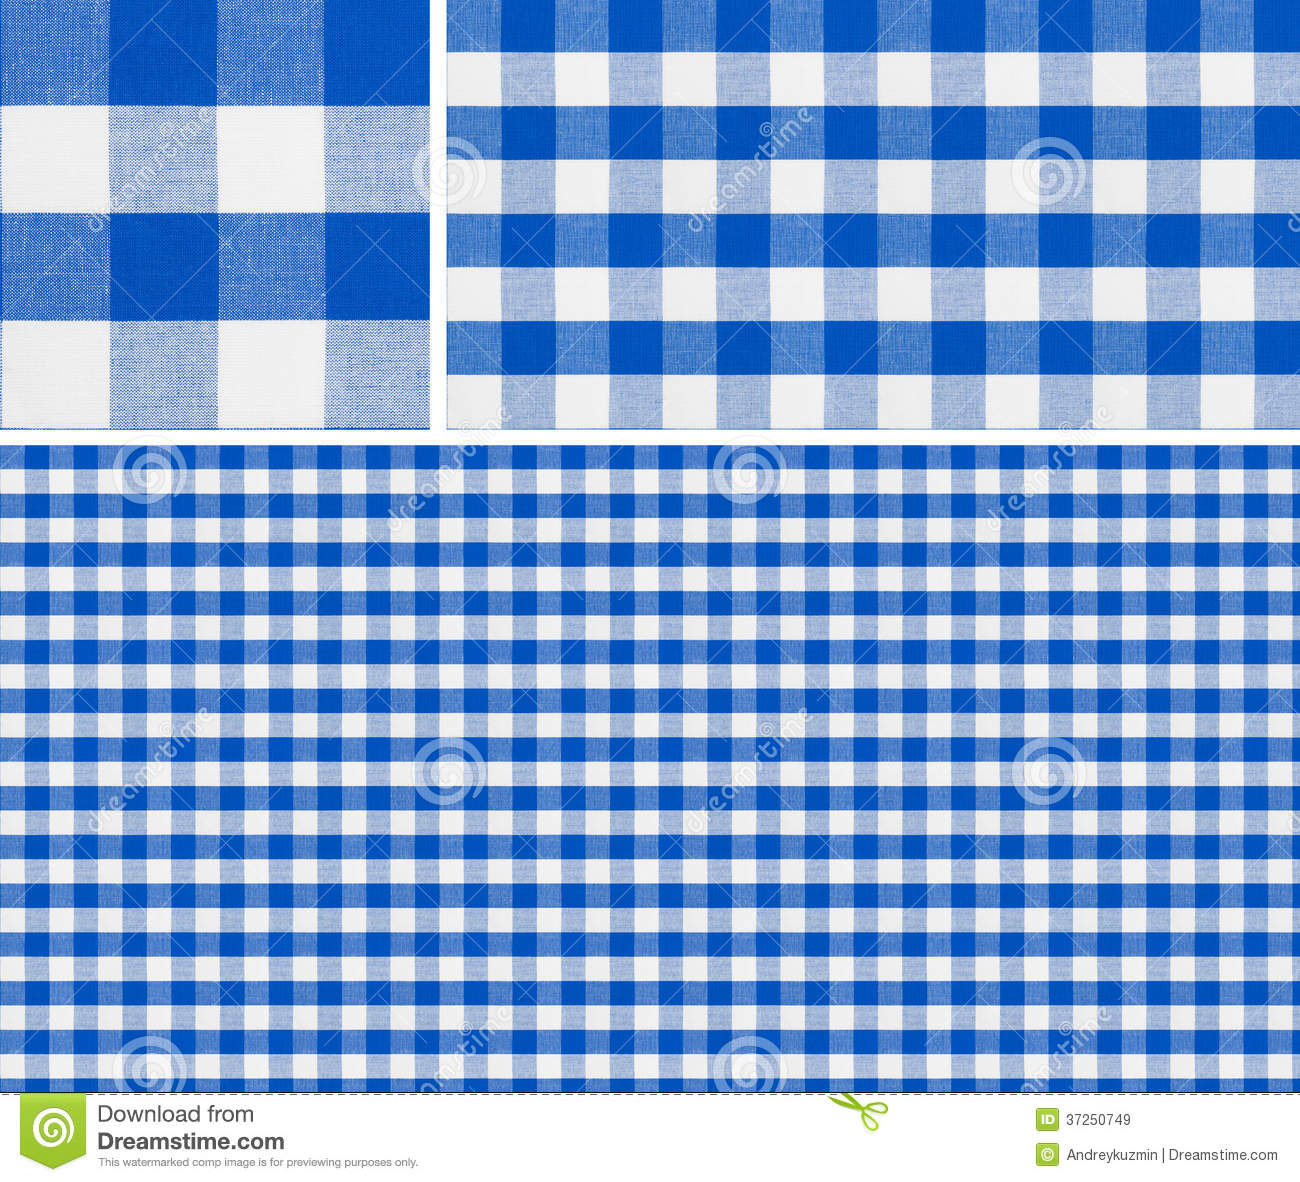 Seamless picnic table cloth pattern 1500x1500 with samples. Good for ...